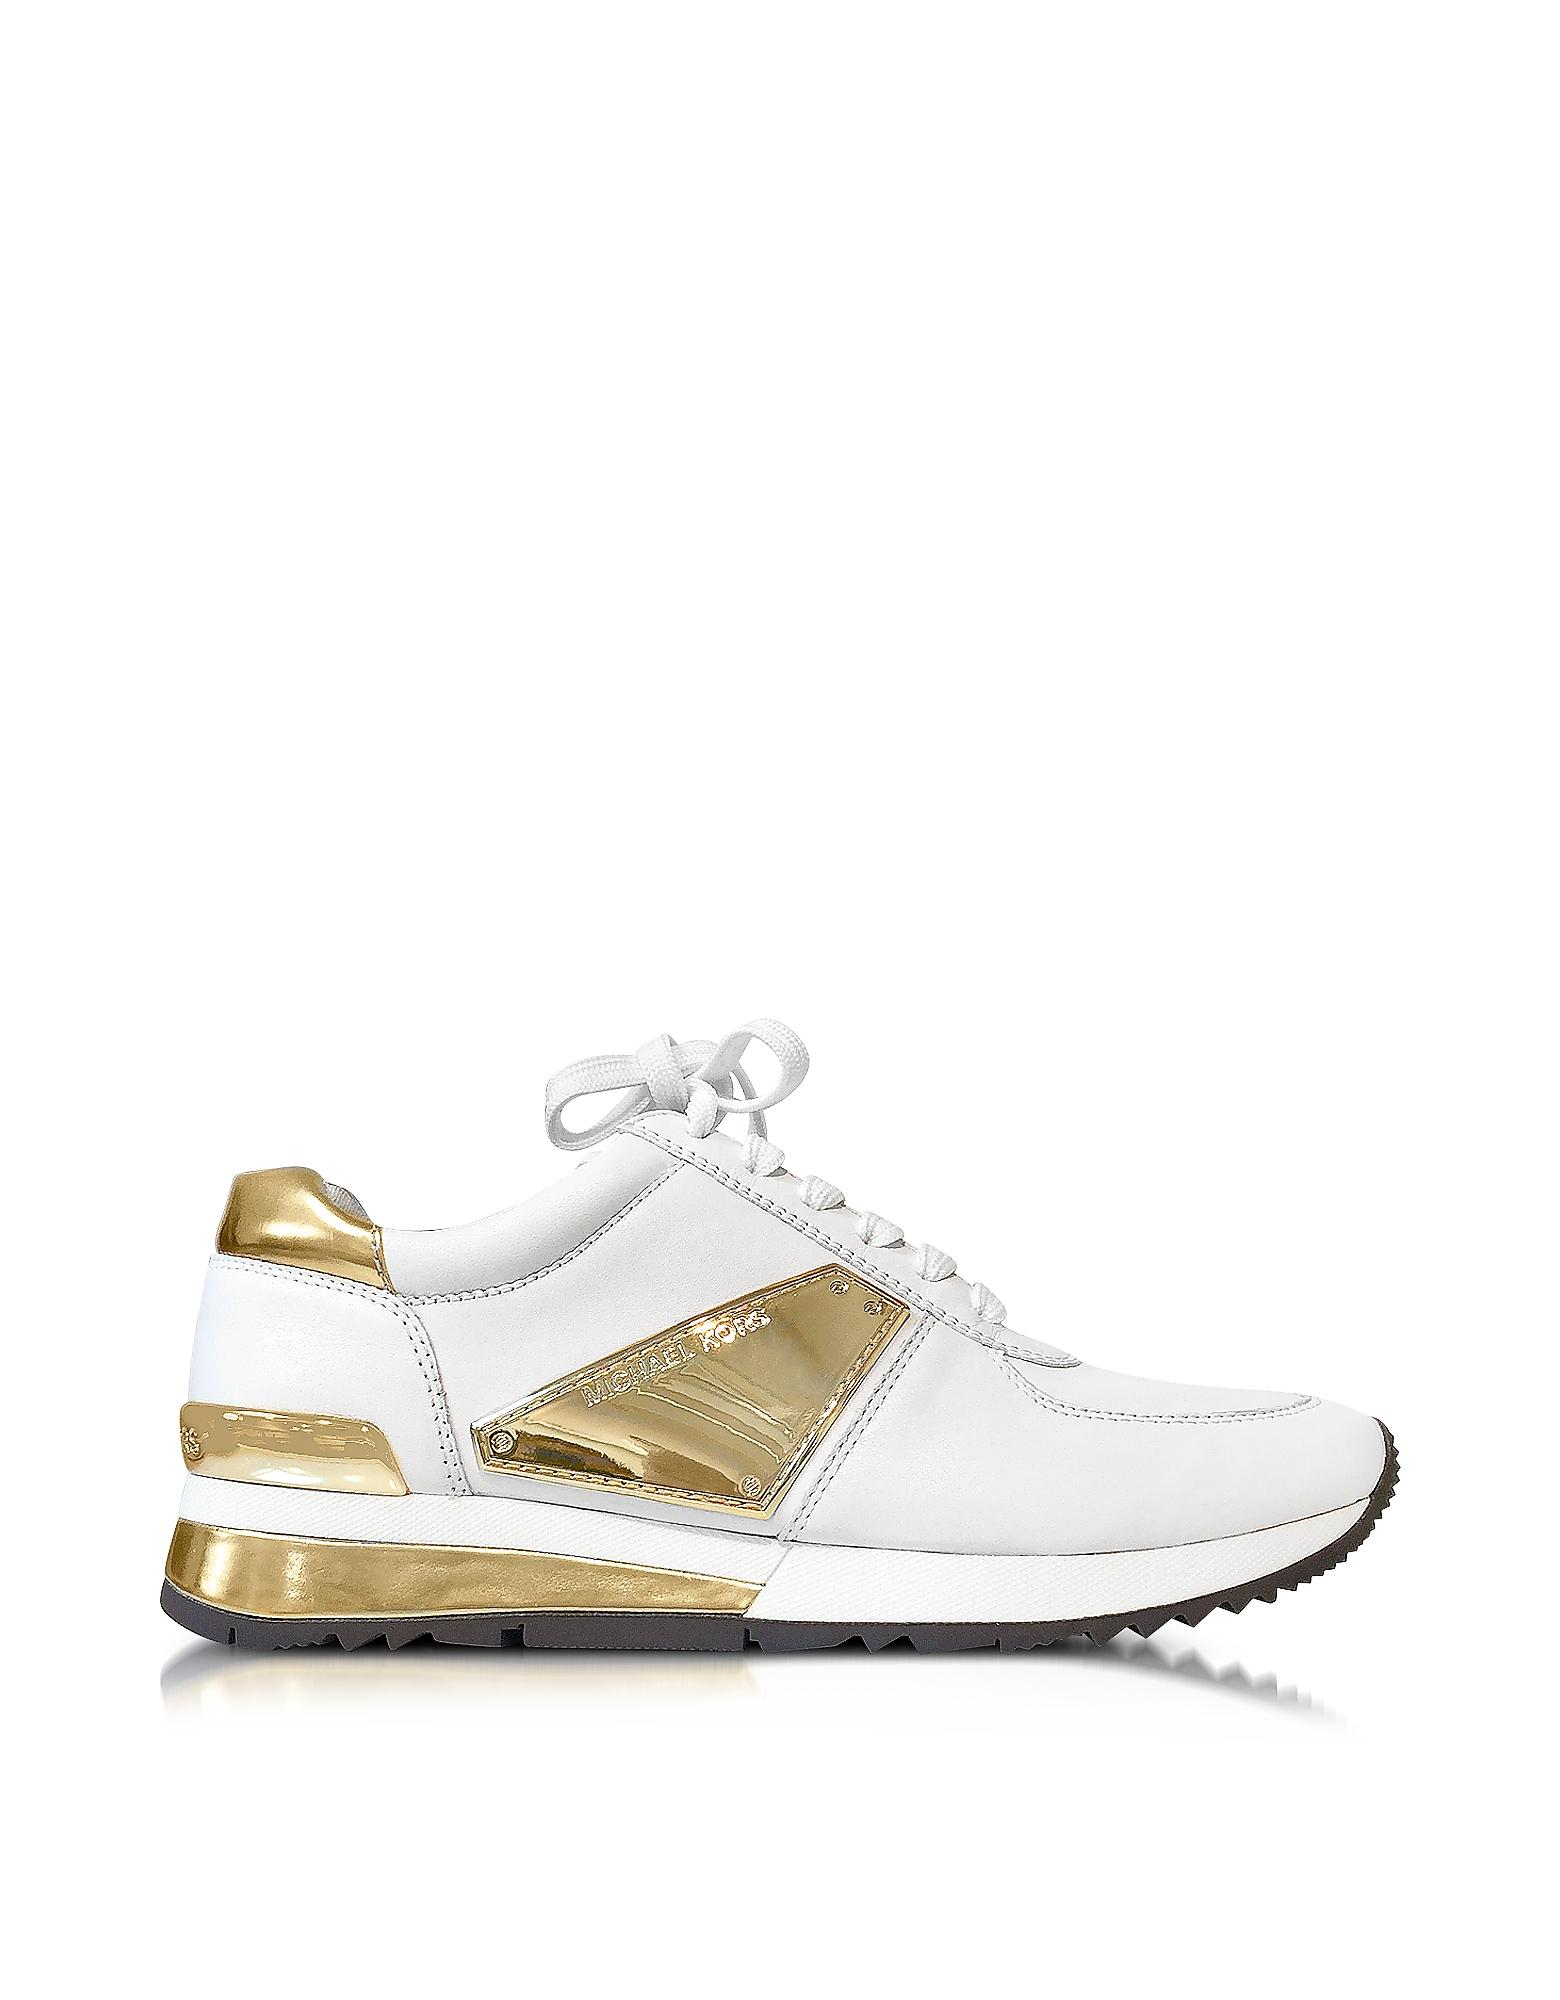 michael kors allie white leather and gold plate wrap sneakers in white lyst. Black Bedroom Furniture Sets. Home Design Ideas